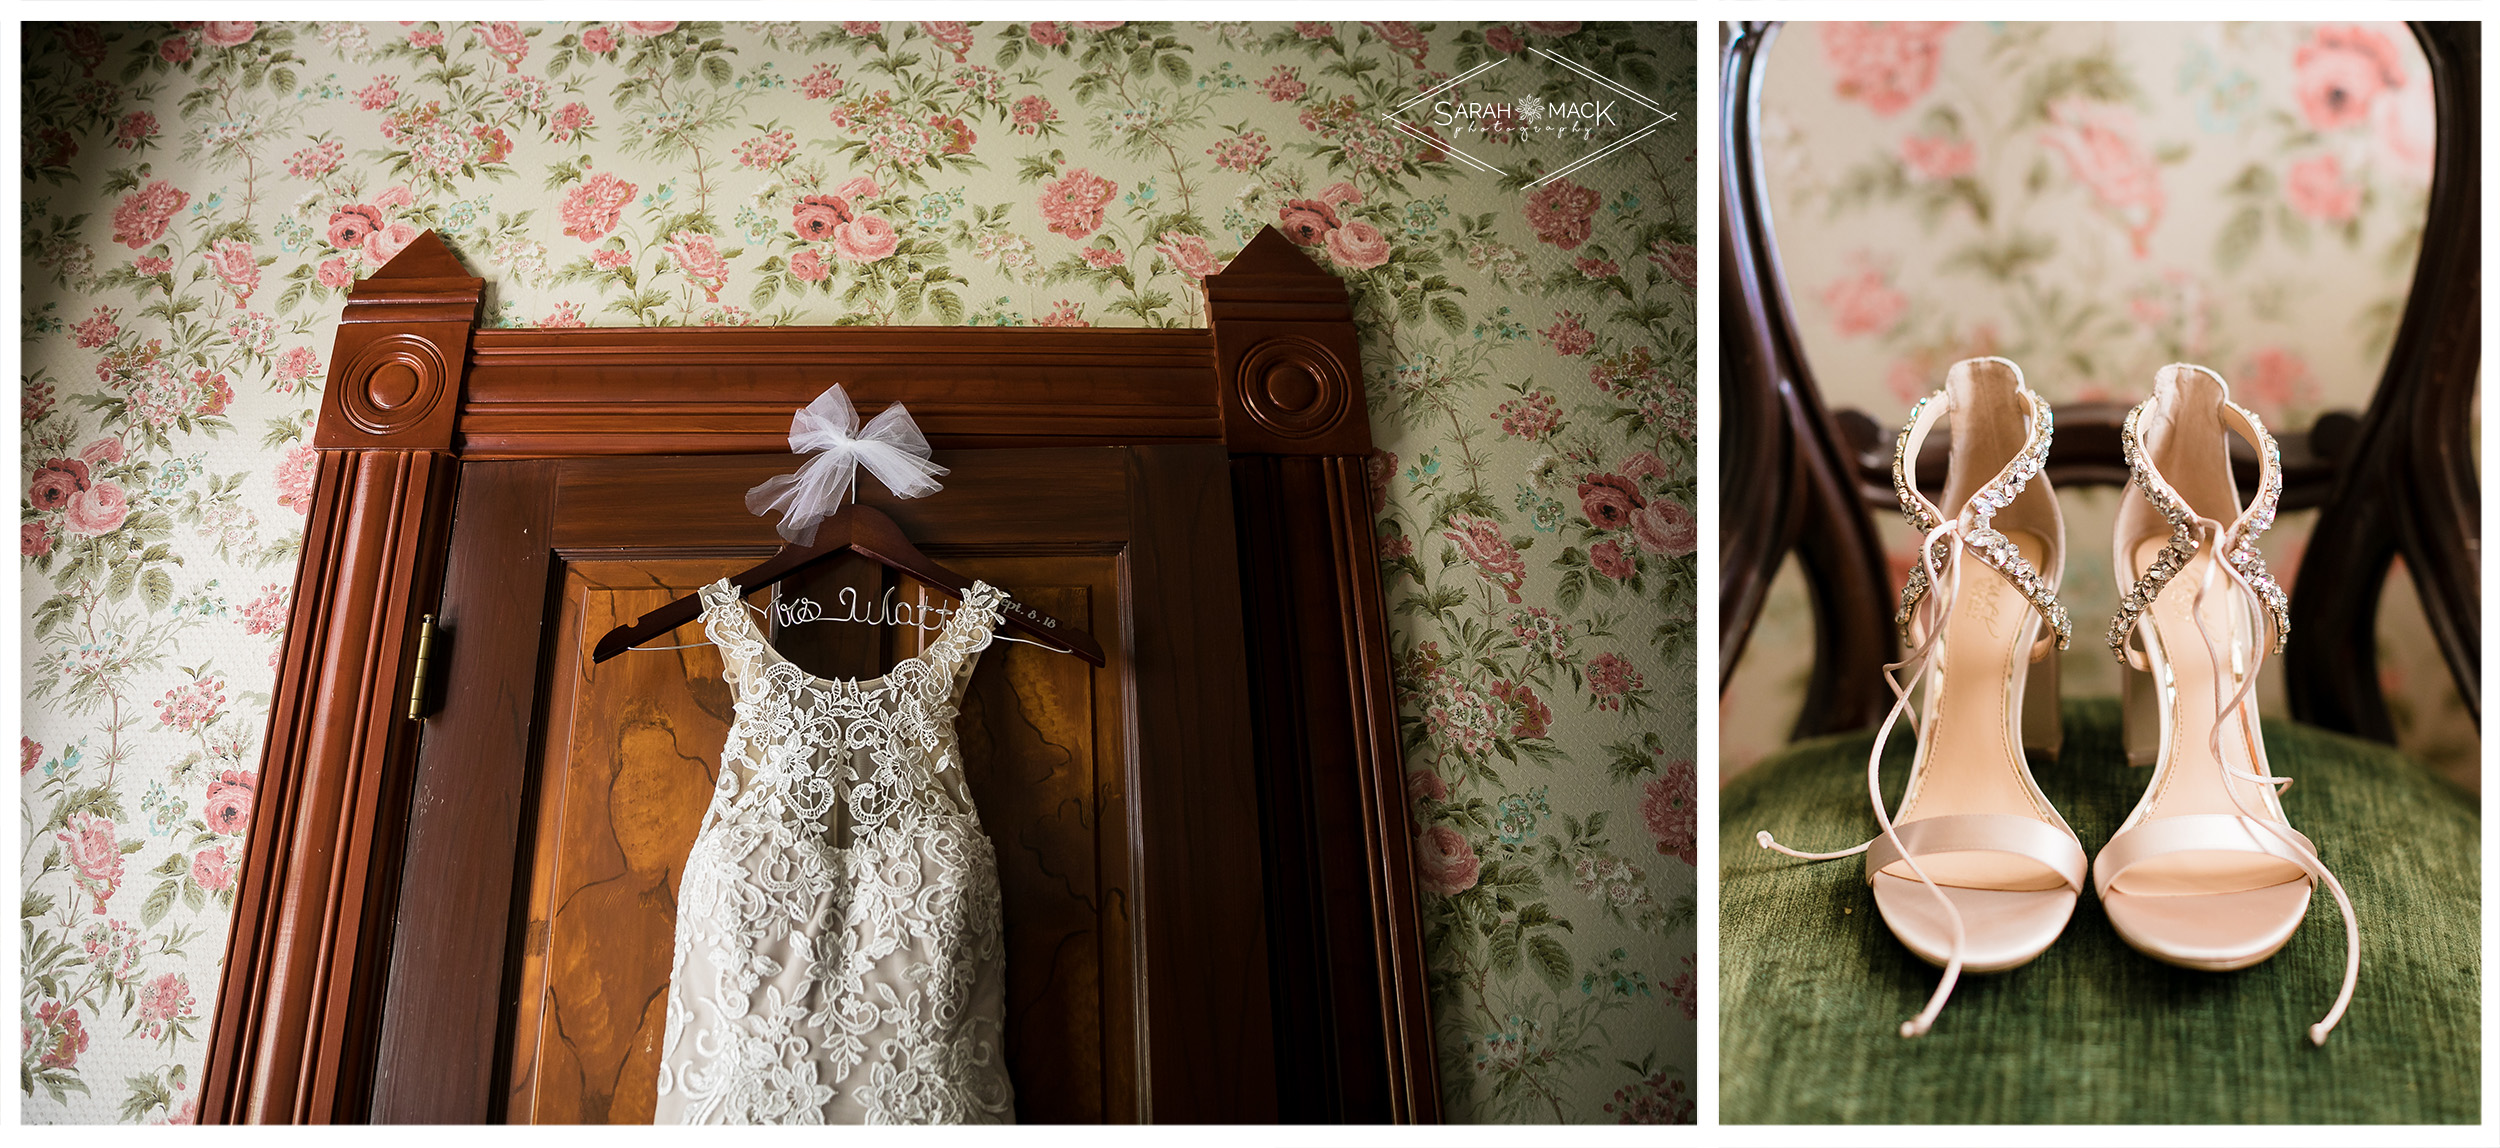 MA-Chandler-Ranch-Paso-Robles-Wedding-Photography-3.jpg